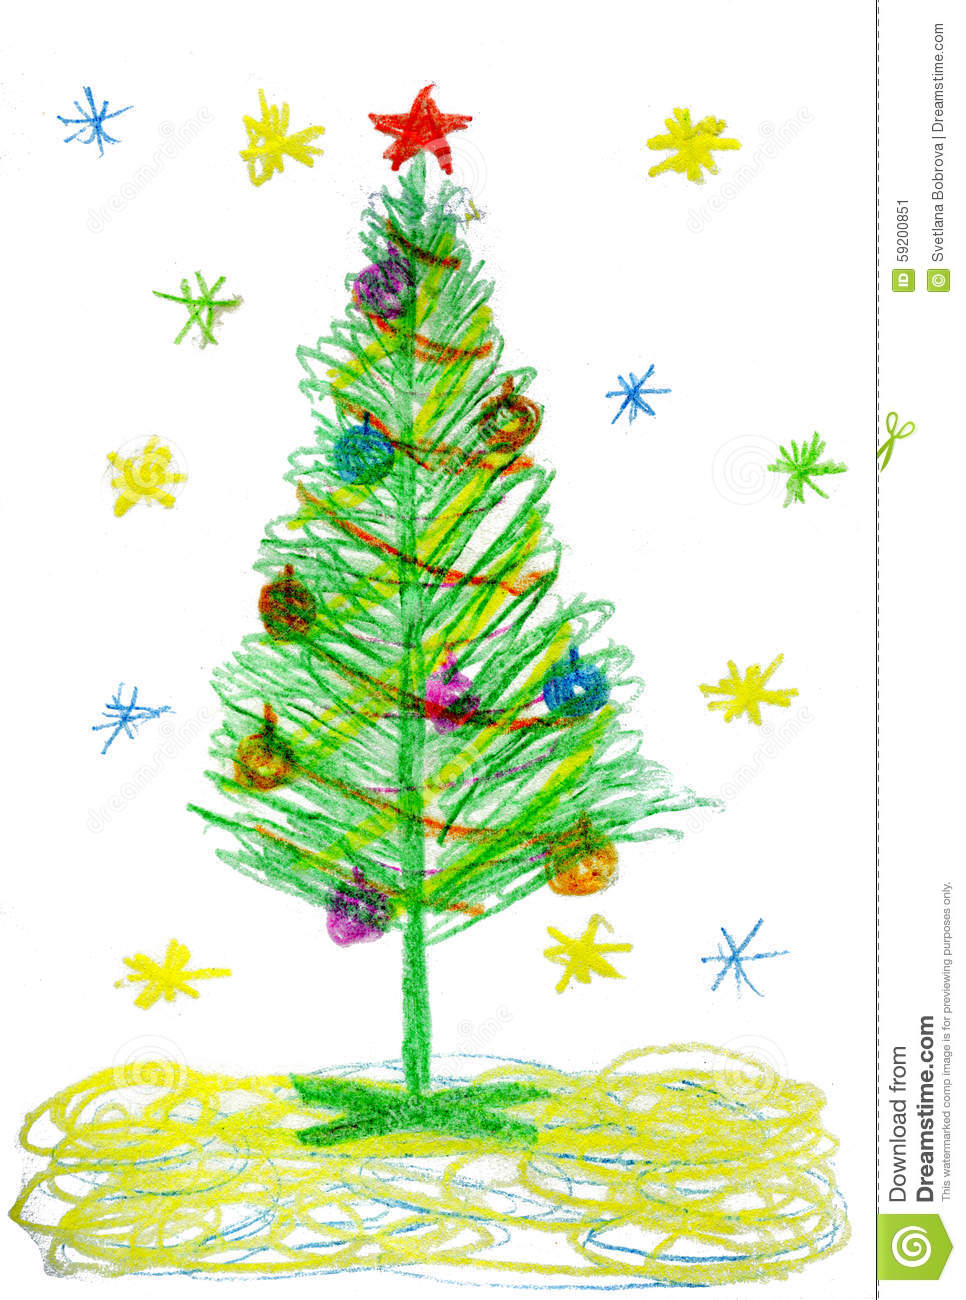 Children Drawing Christmas Tree Stock Illustration - Image: 59200851